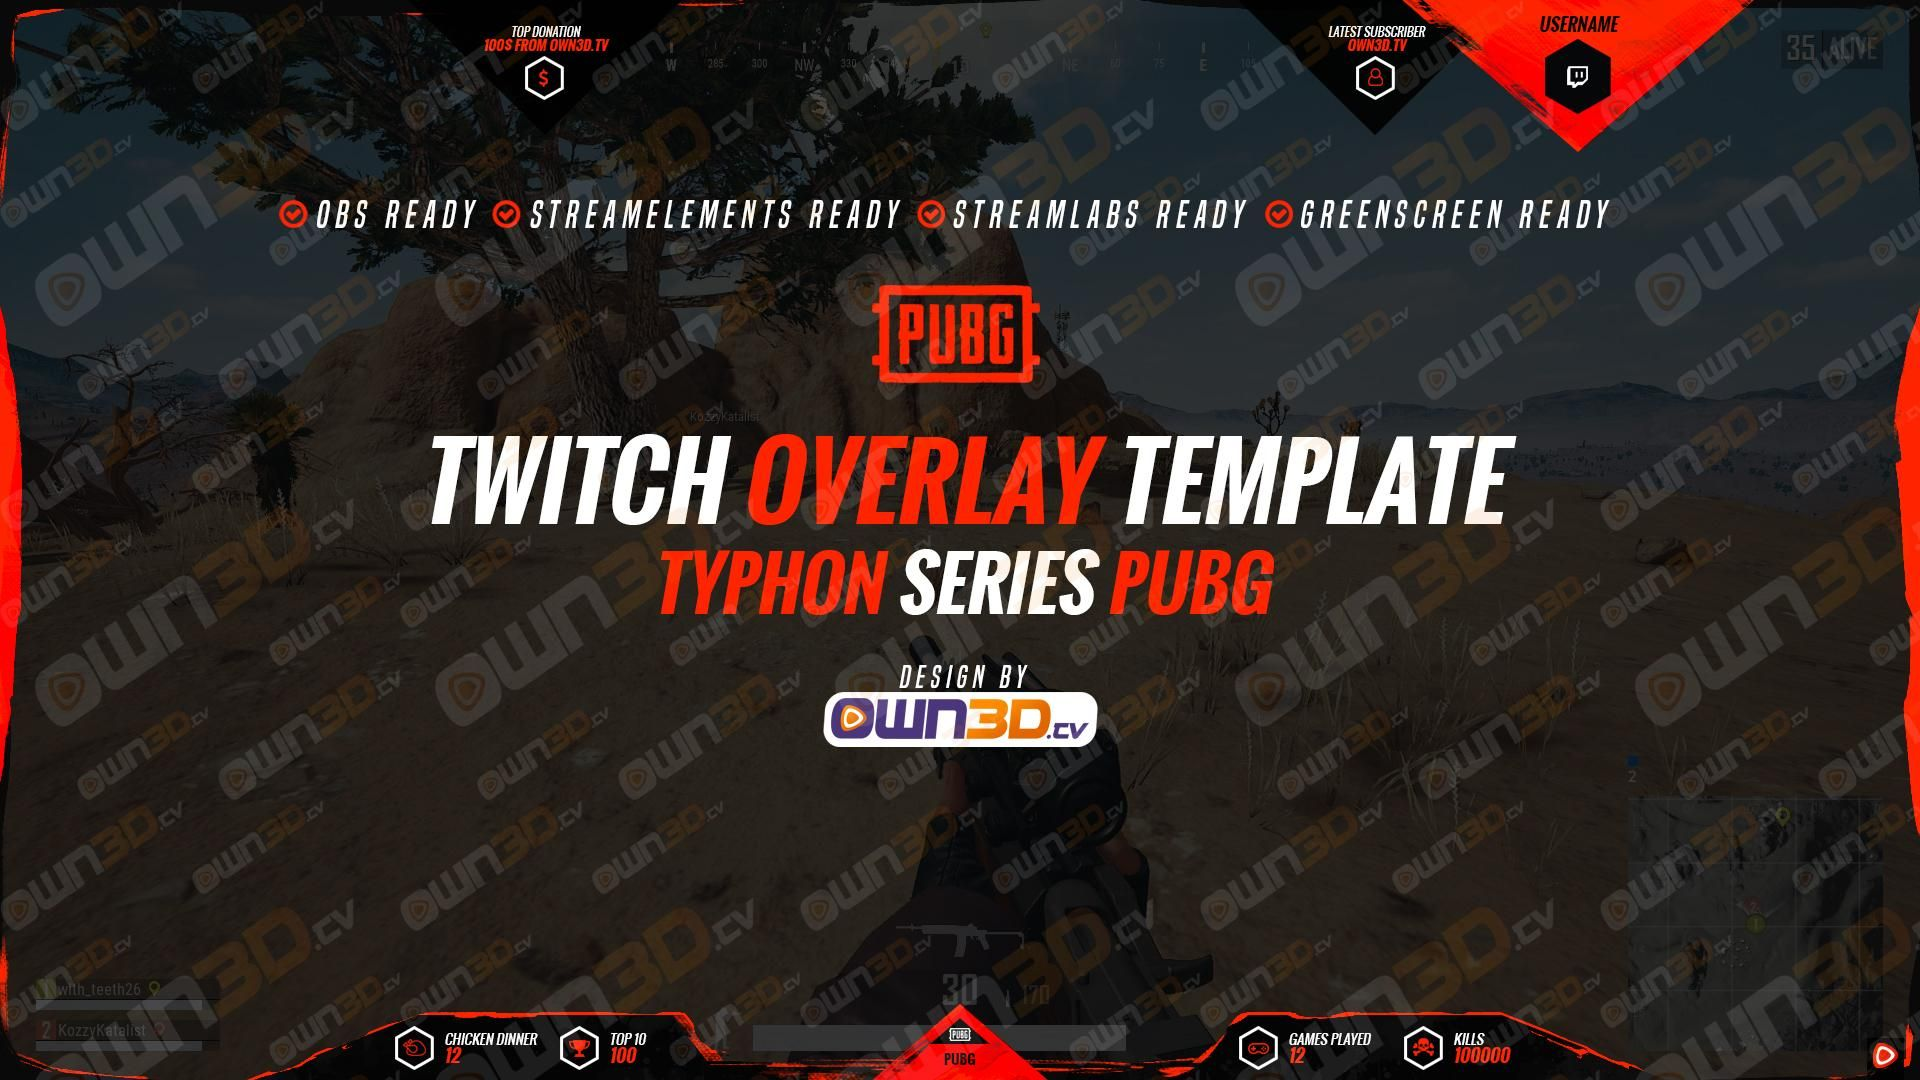 Twitch Overlay Template Typhon Red - PUBG | PUBG Twitch Overlays